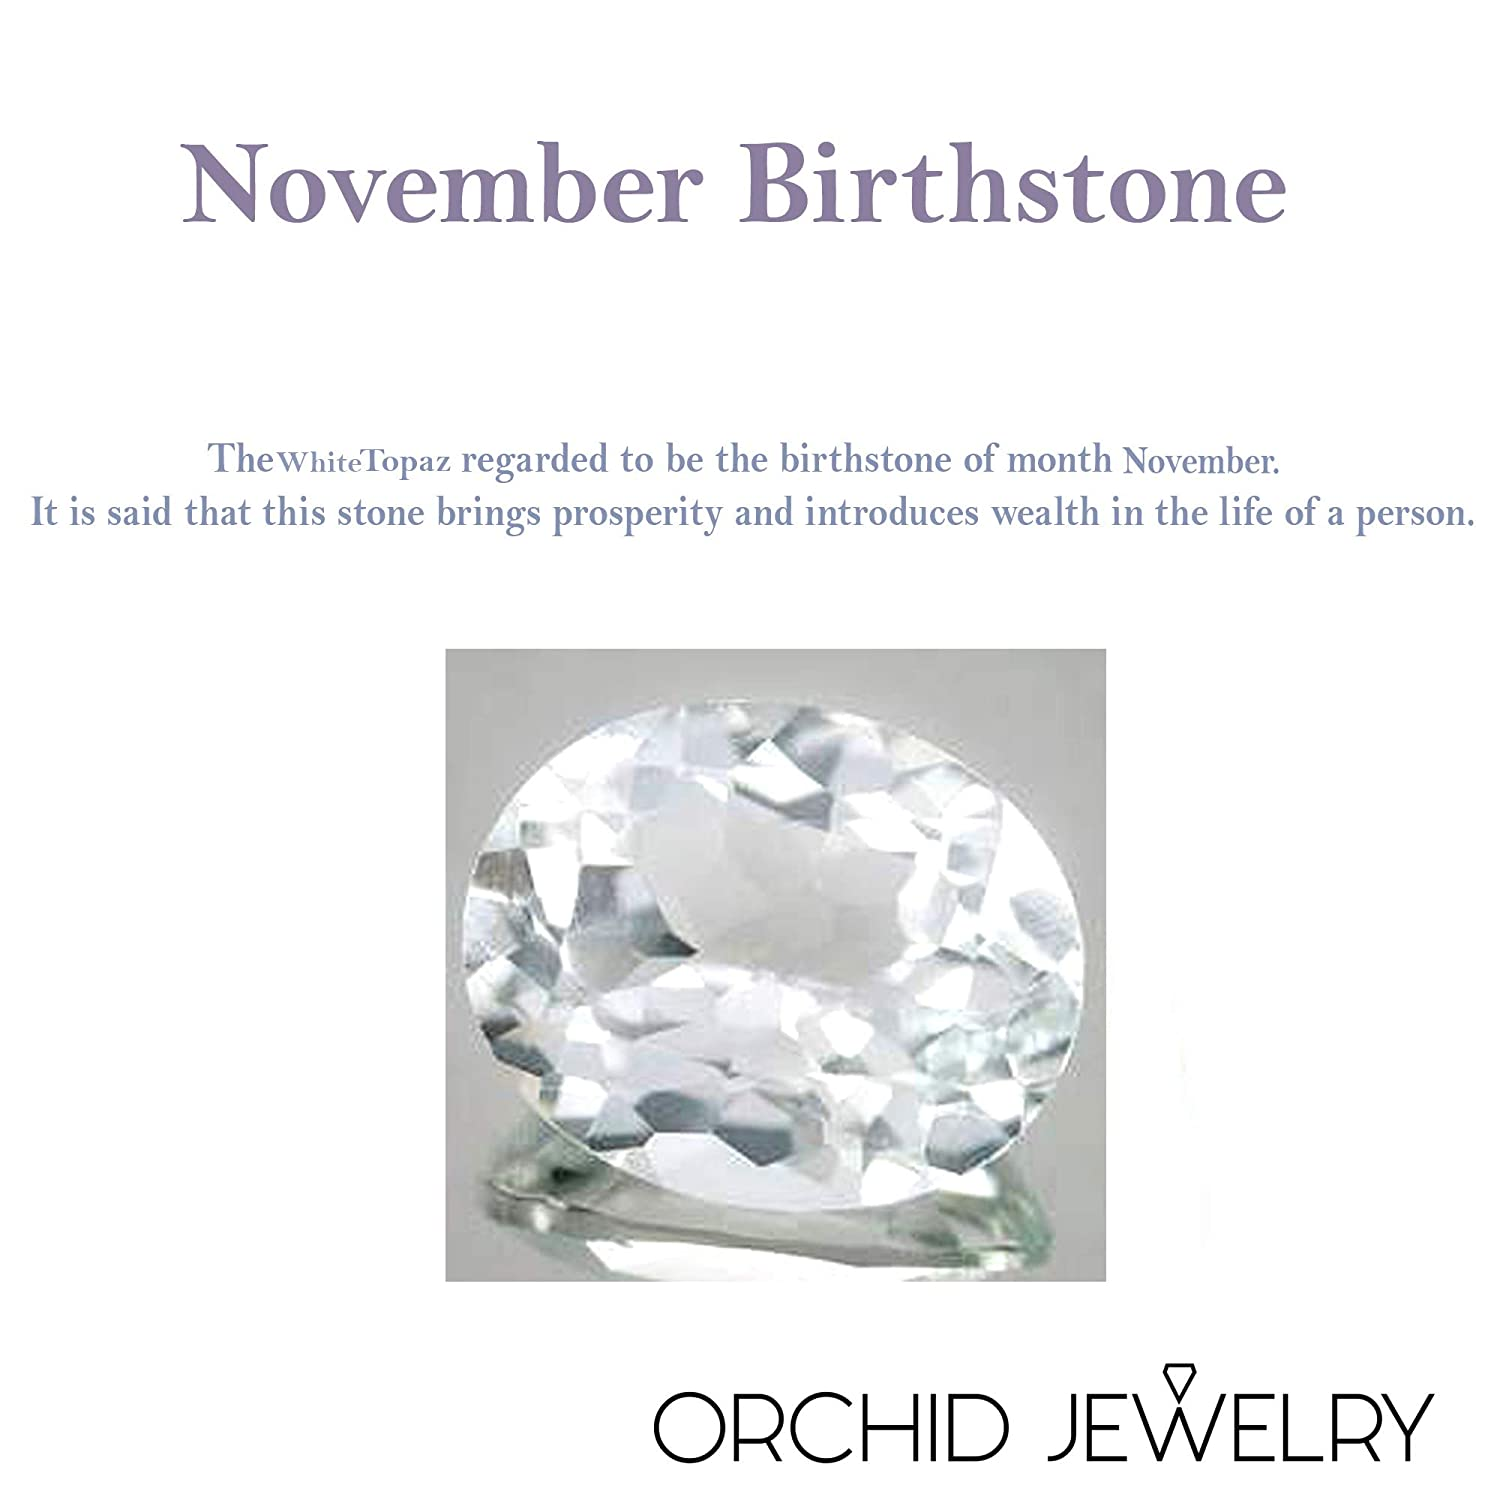 Nickel Free Beautiful and Stylish Birthday Gift for Sister Orchid Jewelry 2.40 Ct Pear Shaped White Topaz 925 Sterling Silver Pendant for Women